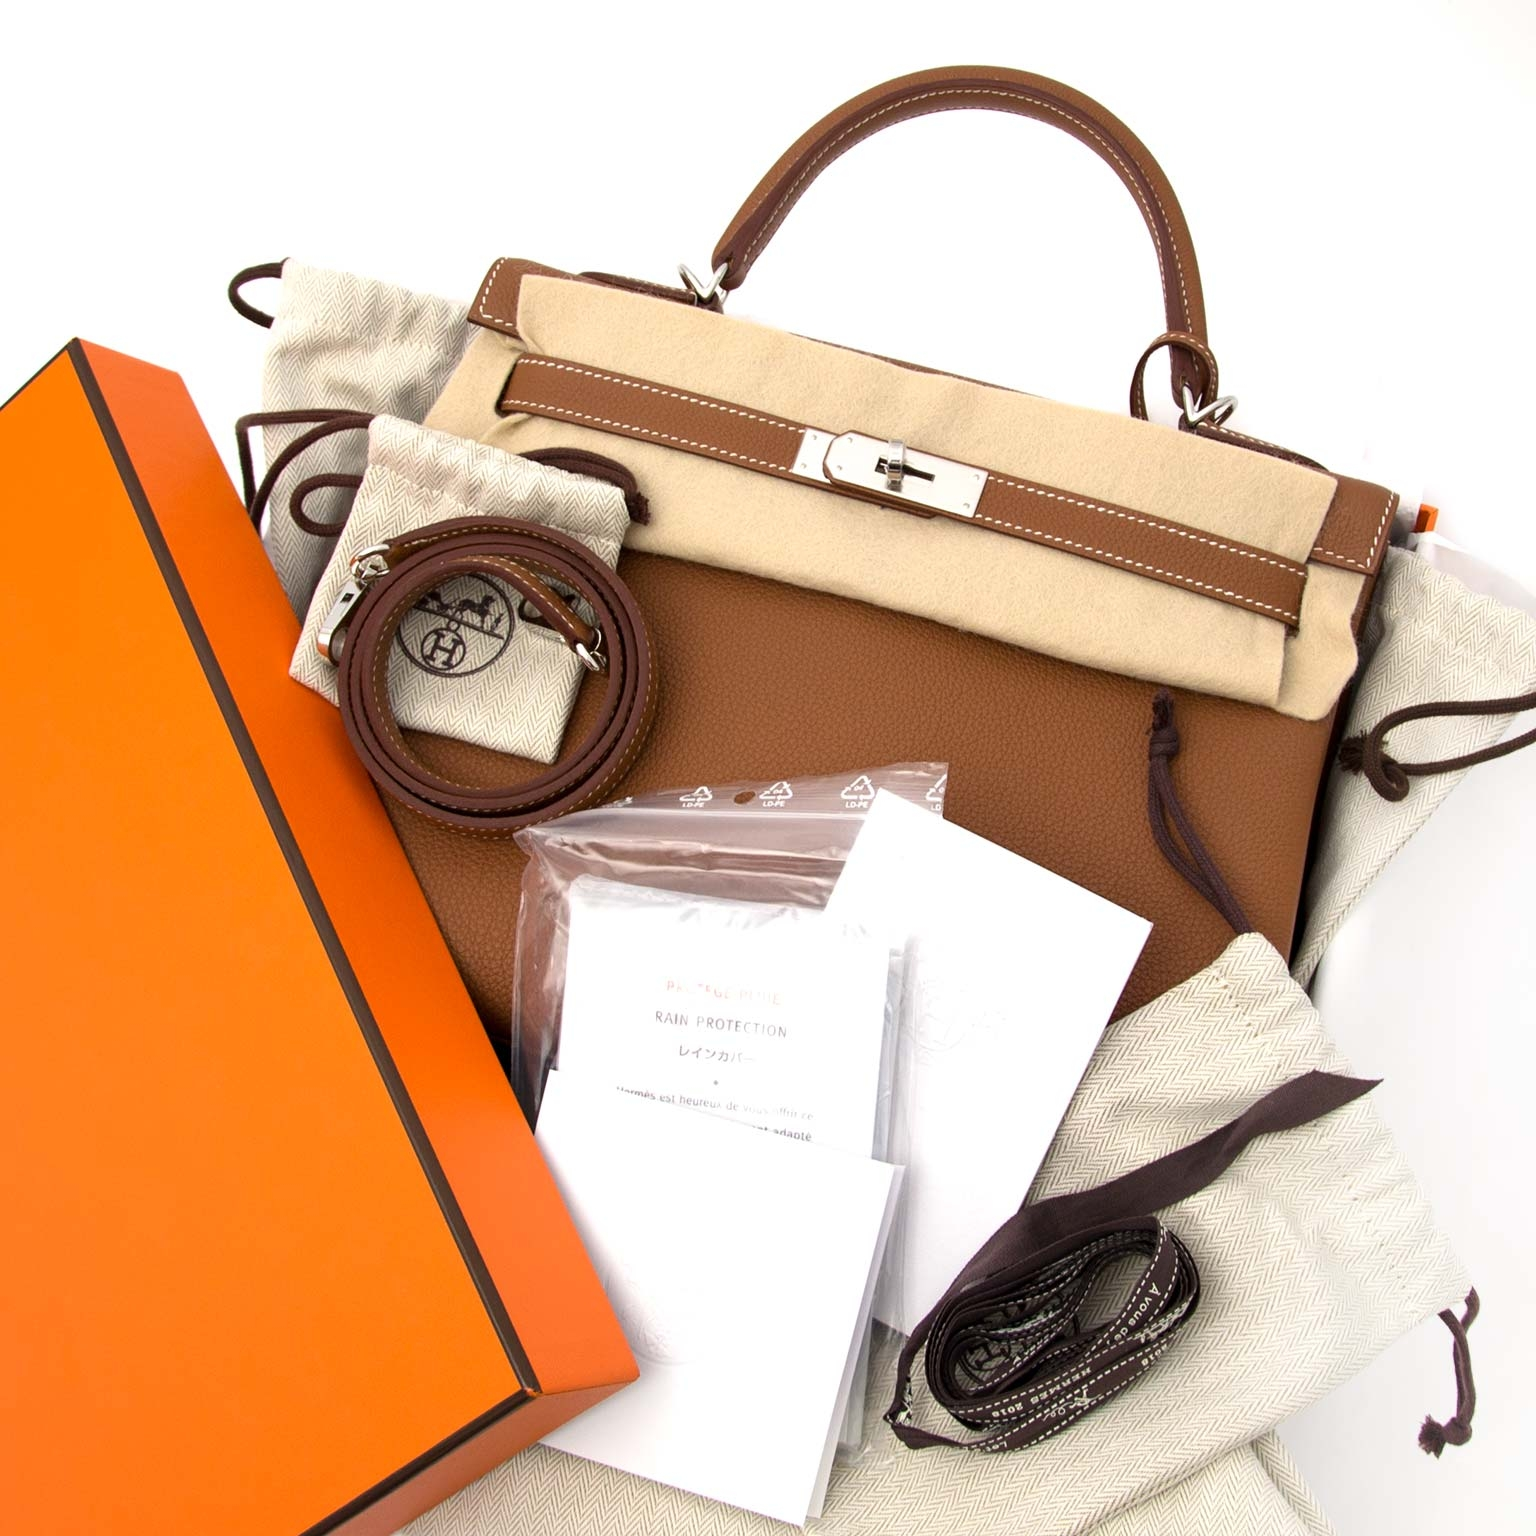 skip the waitinglist and get your Hermès kelly 32 togo gold phw right now 100% authentic on labellov.com